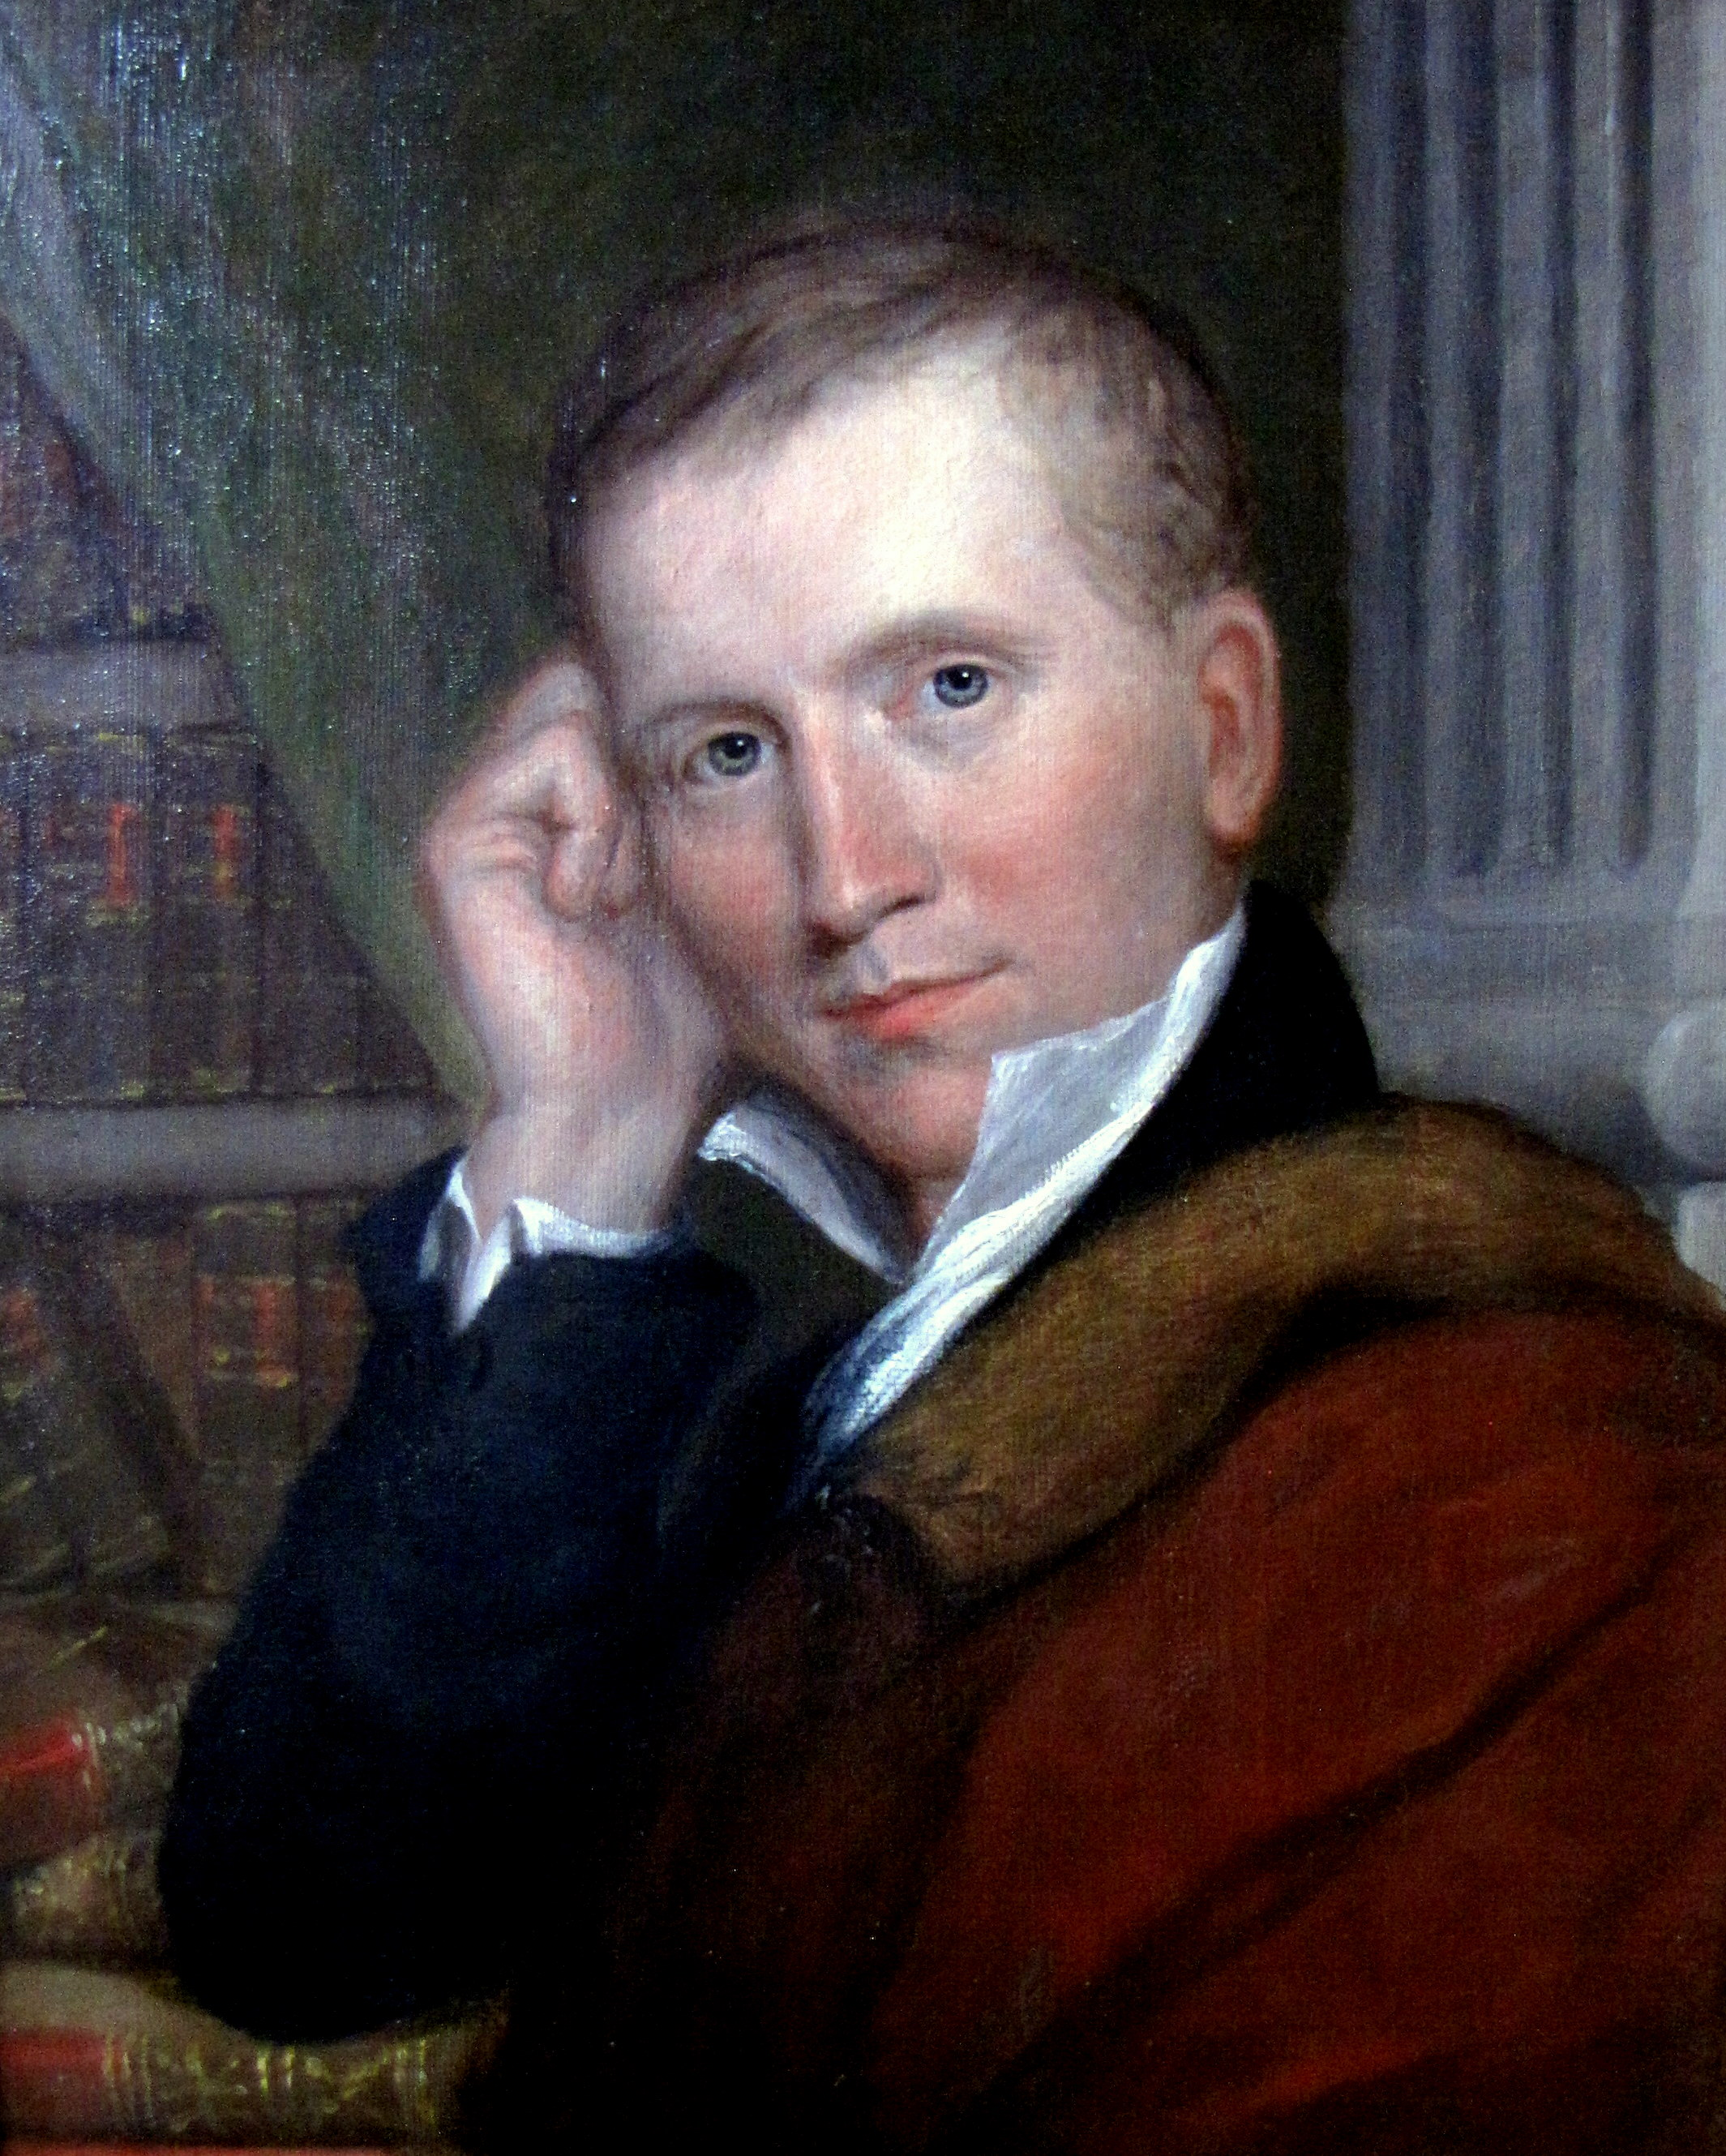 Portrait of Hamilton Eliot Perkins as a young man.